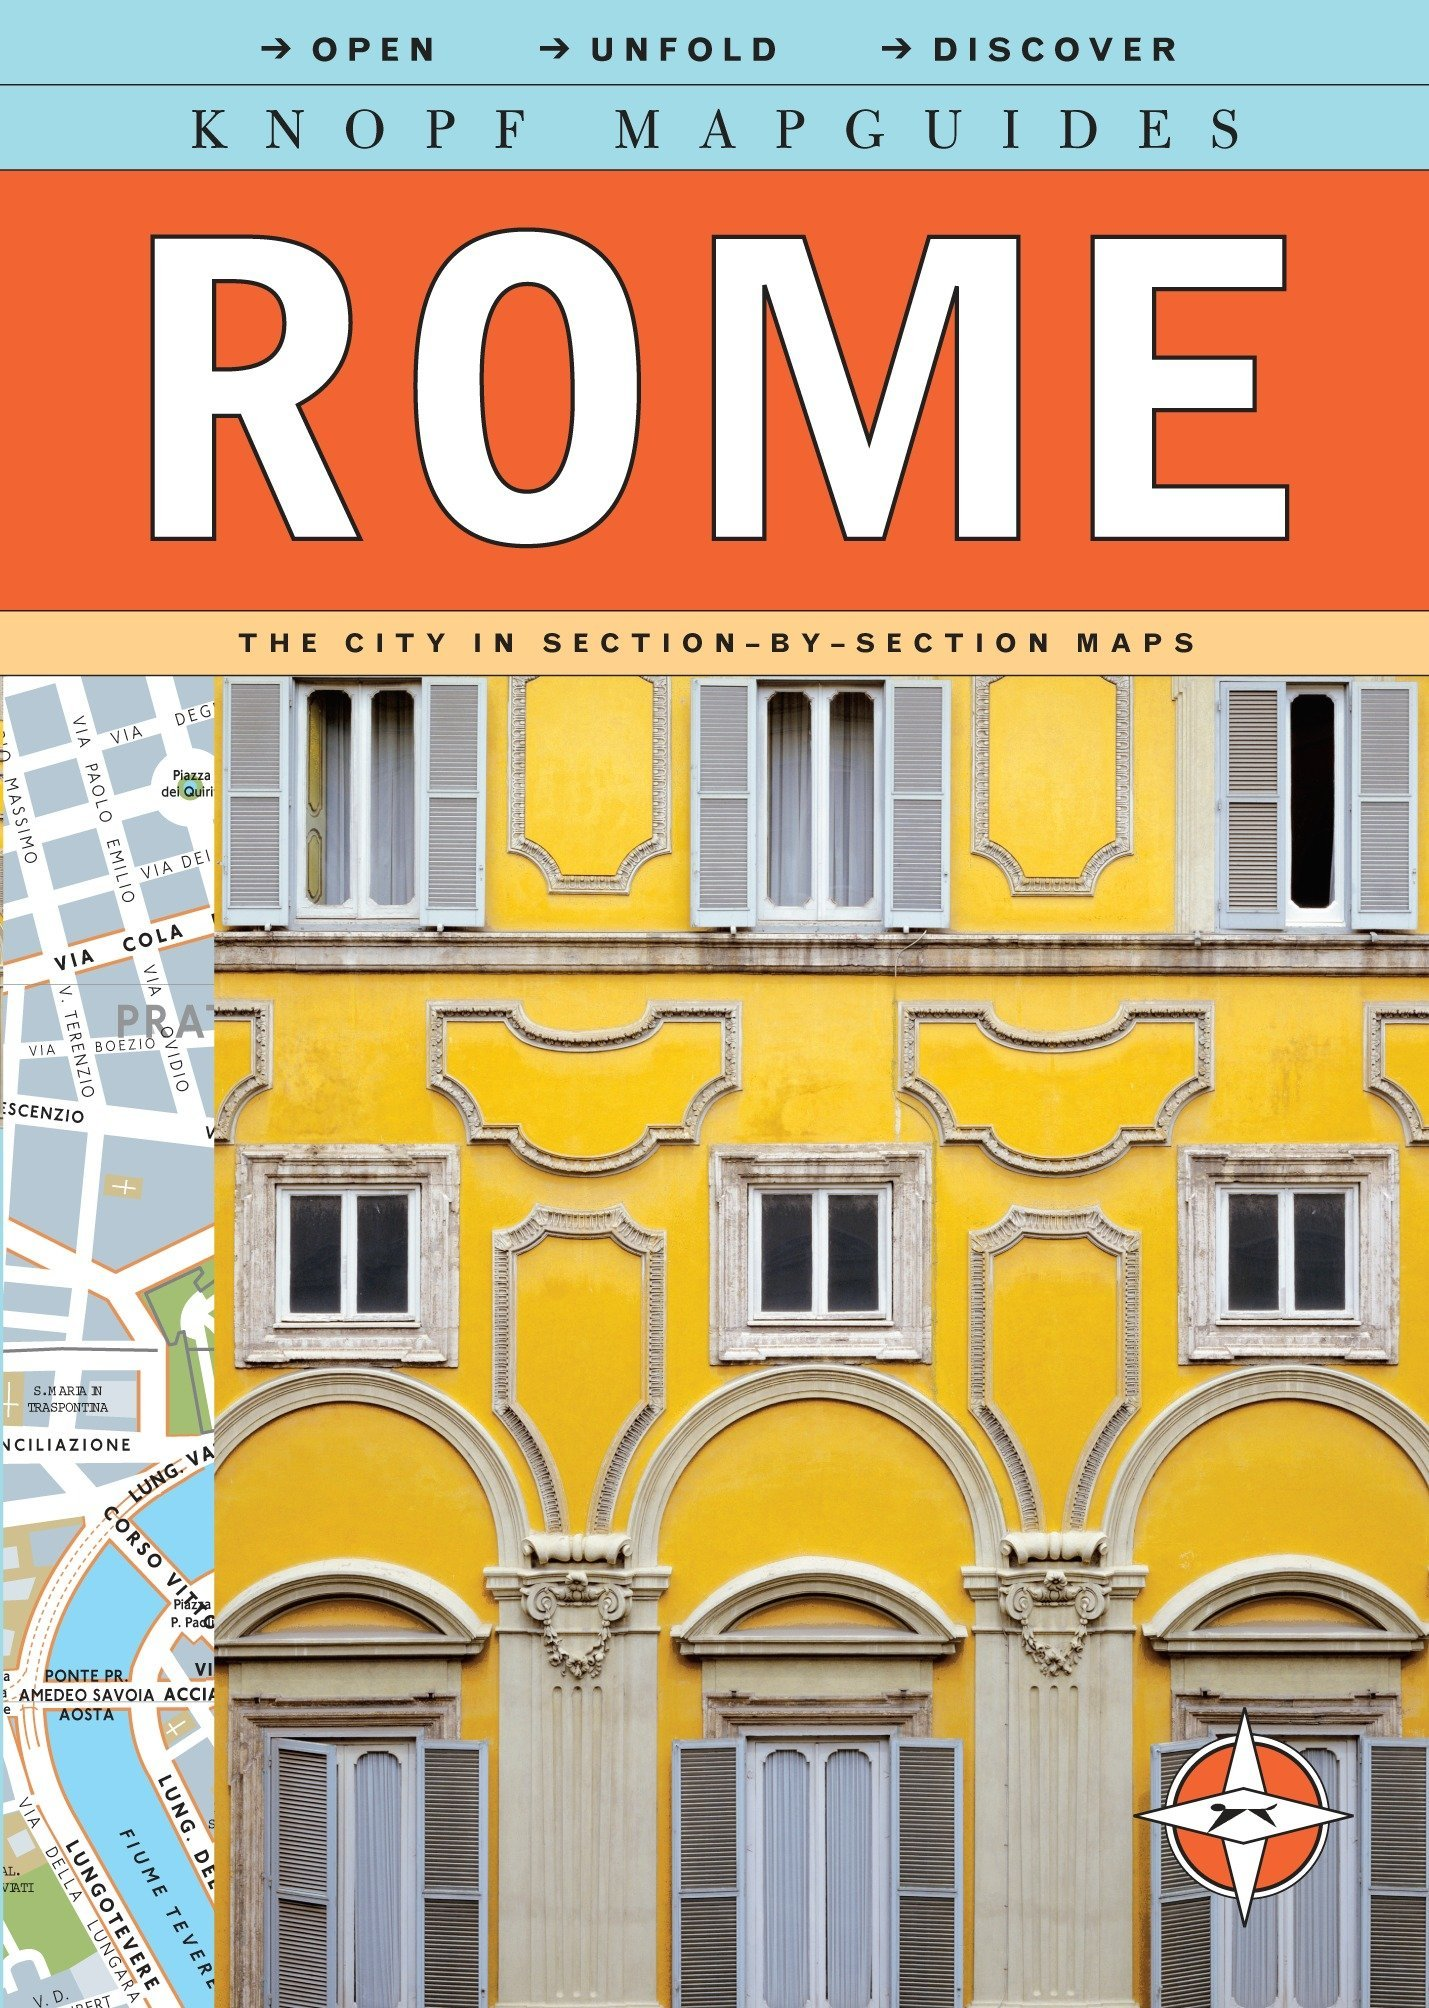 Knopf Mapguides: Rome: The City in Section-by-Section Maps by Knopf Guides